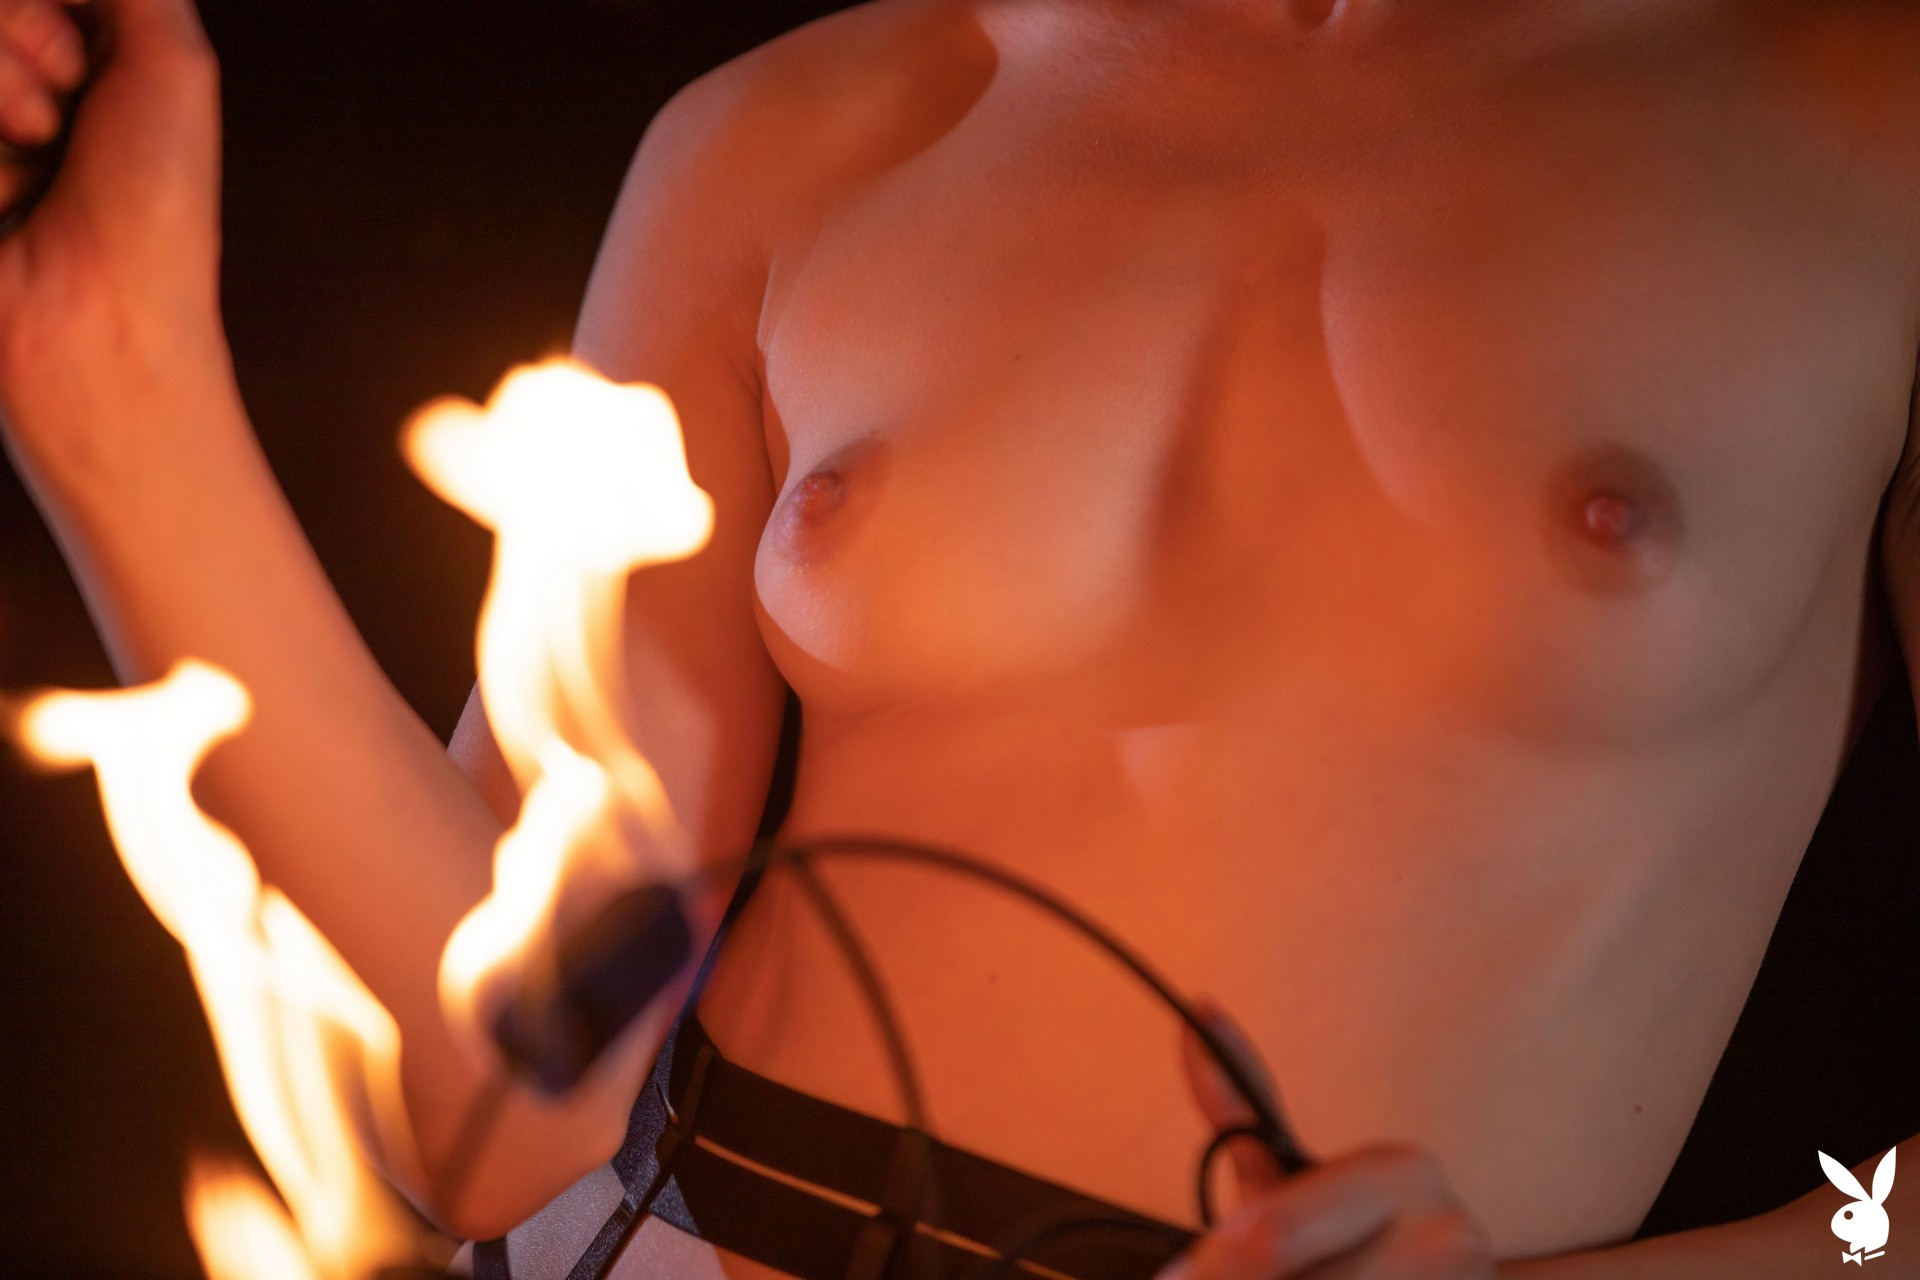 Elilith Noir In Playing With Fire Playboy Plus (13)